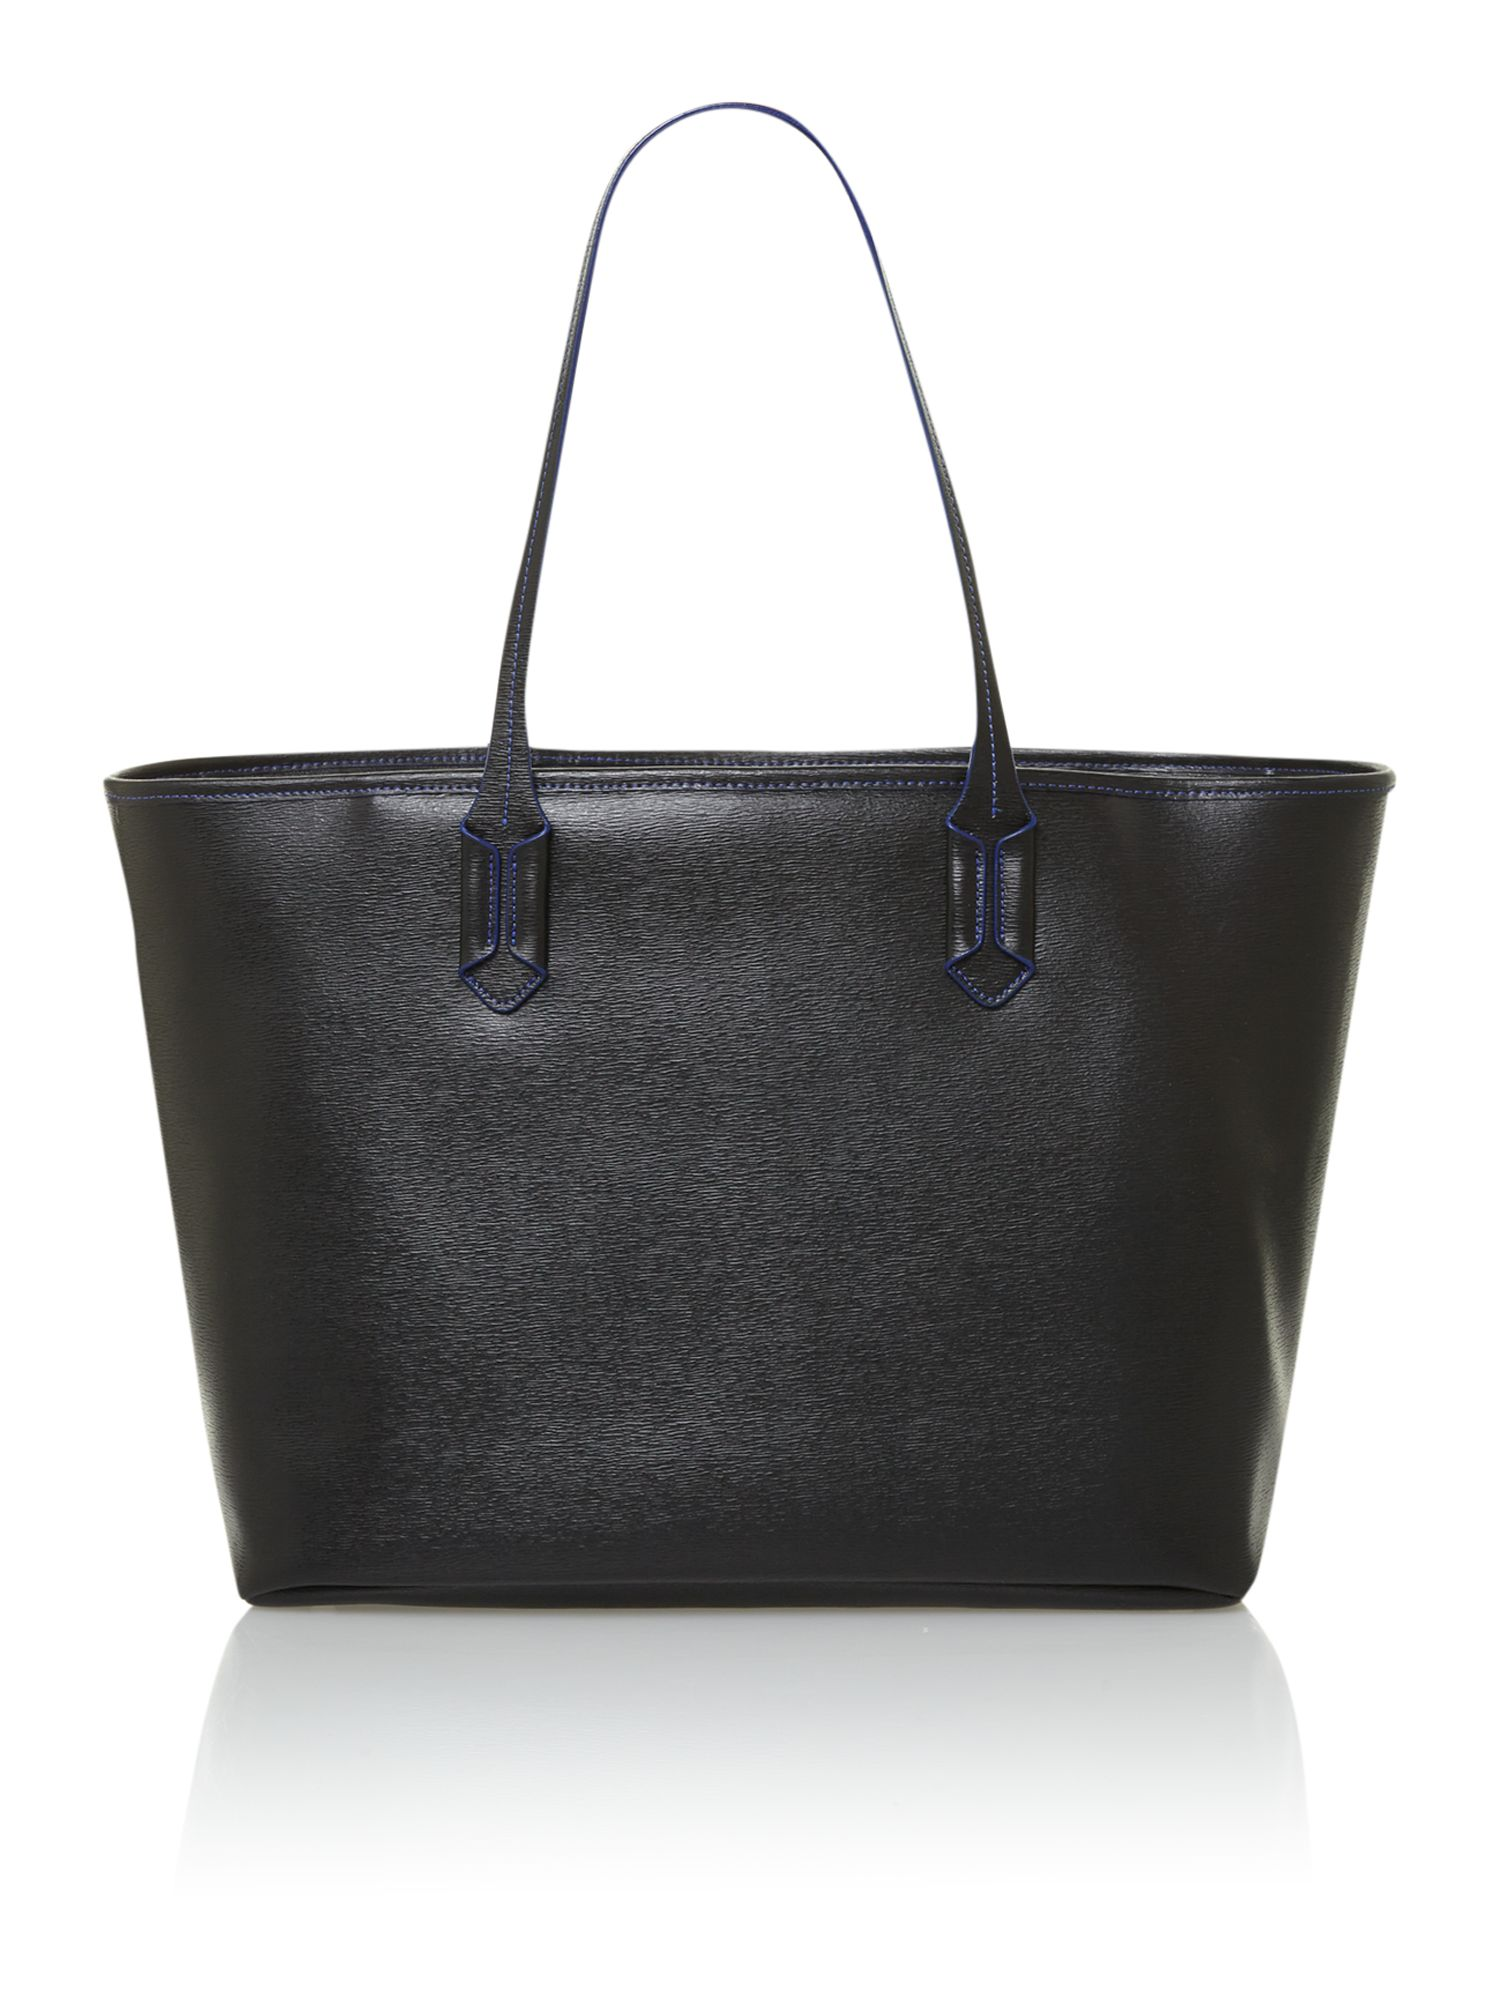 Tate black tote bag